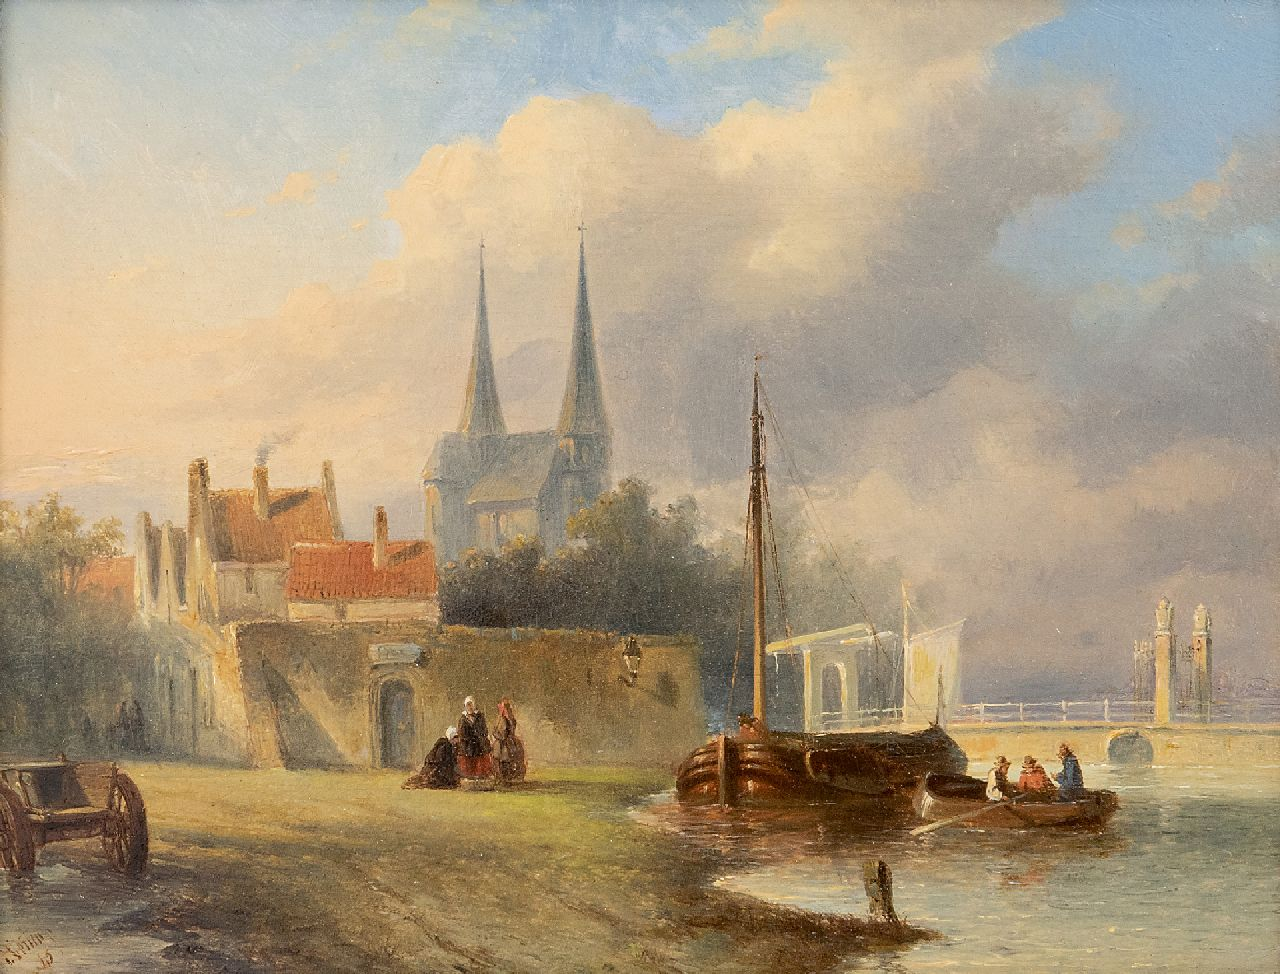 Vertin P.G.  | Petrus Gerardus Vertin | Paintings offered for sale | A Dutch town along a river, oil on panel 19.4 x 25.6 cm, signed l.l. and dated '45